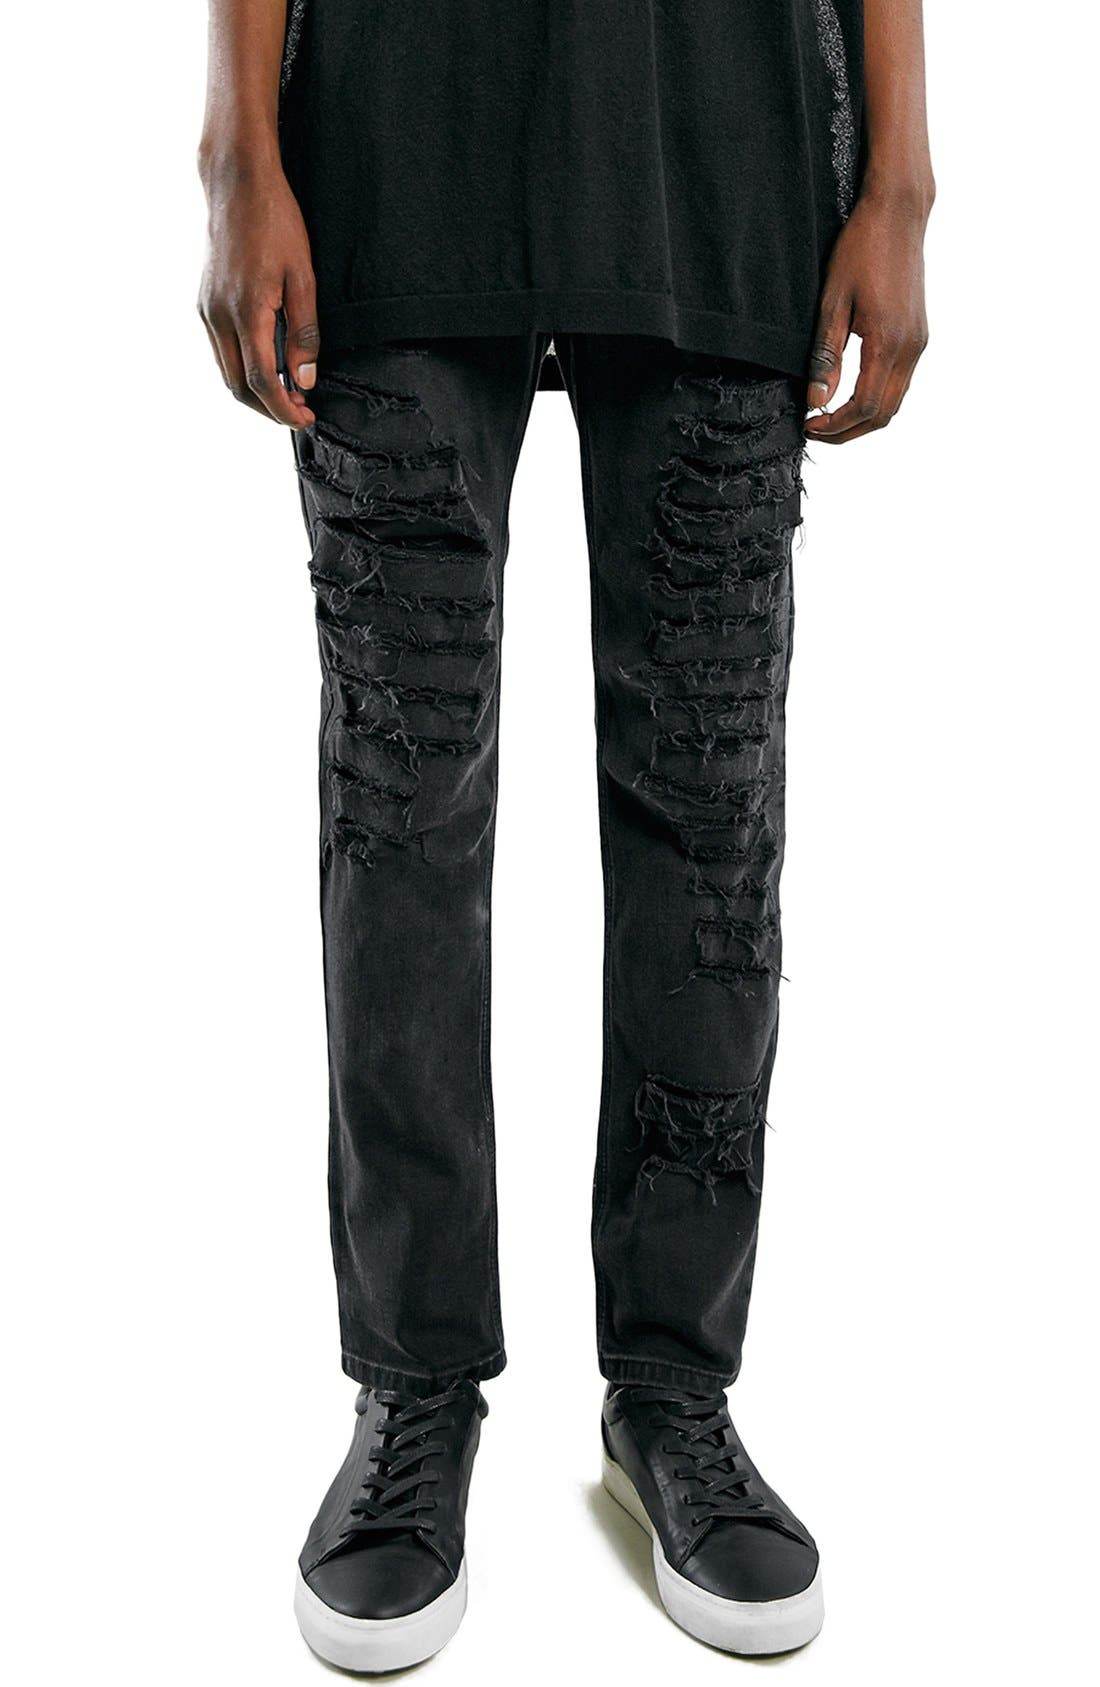 'AAA Collection' Shredded Stretch Skinny Fit Jeans,                         Main,                         color, 001